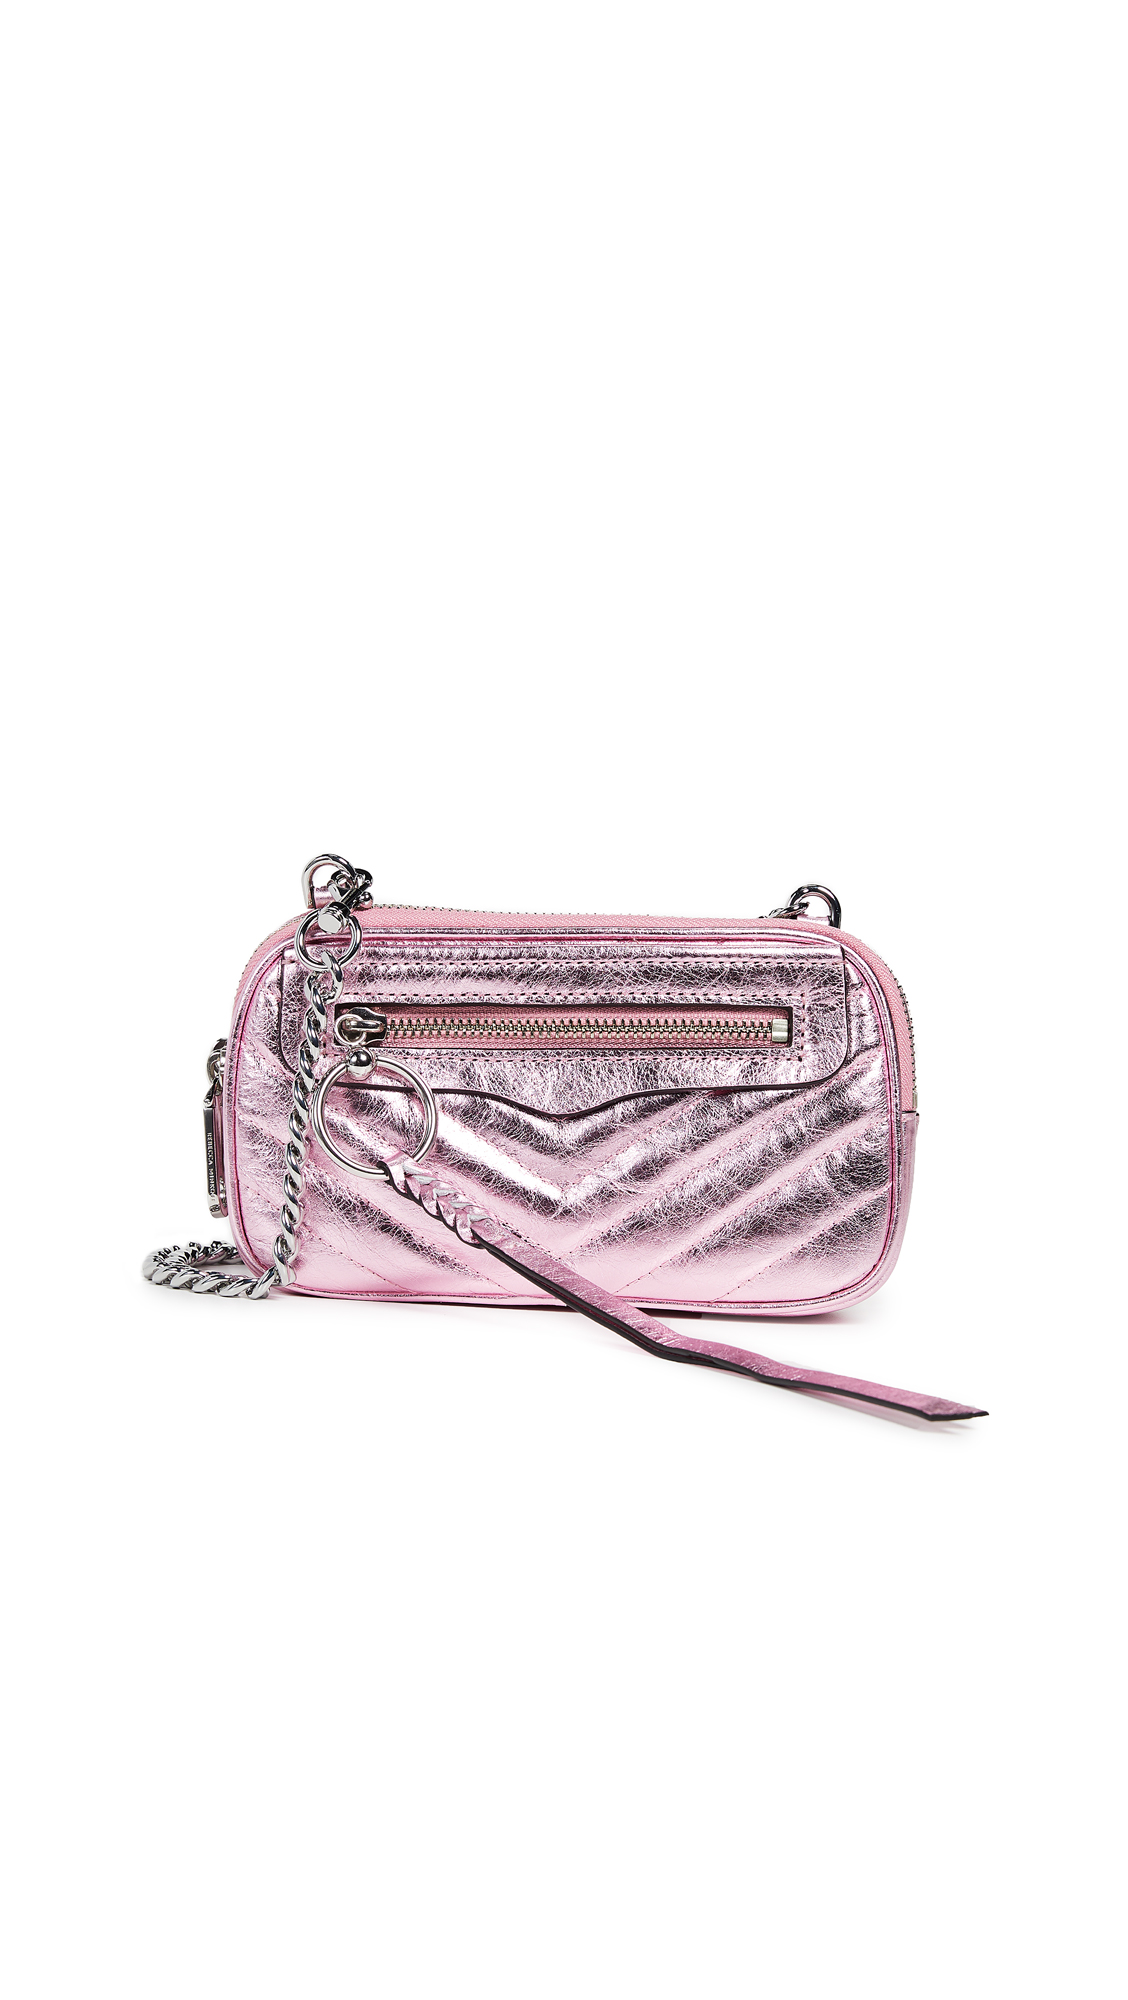 Rebecca Minkoff Chevron Double Zip Crossbody Bag